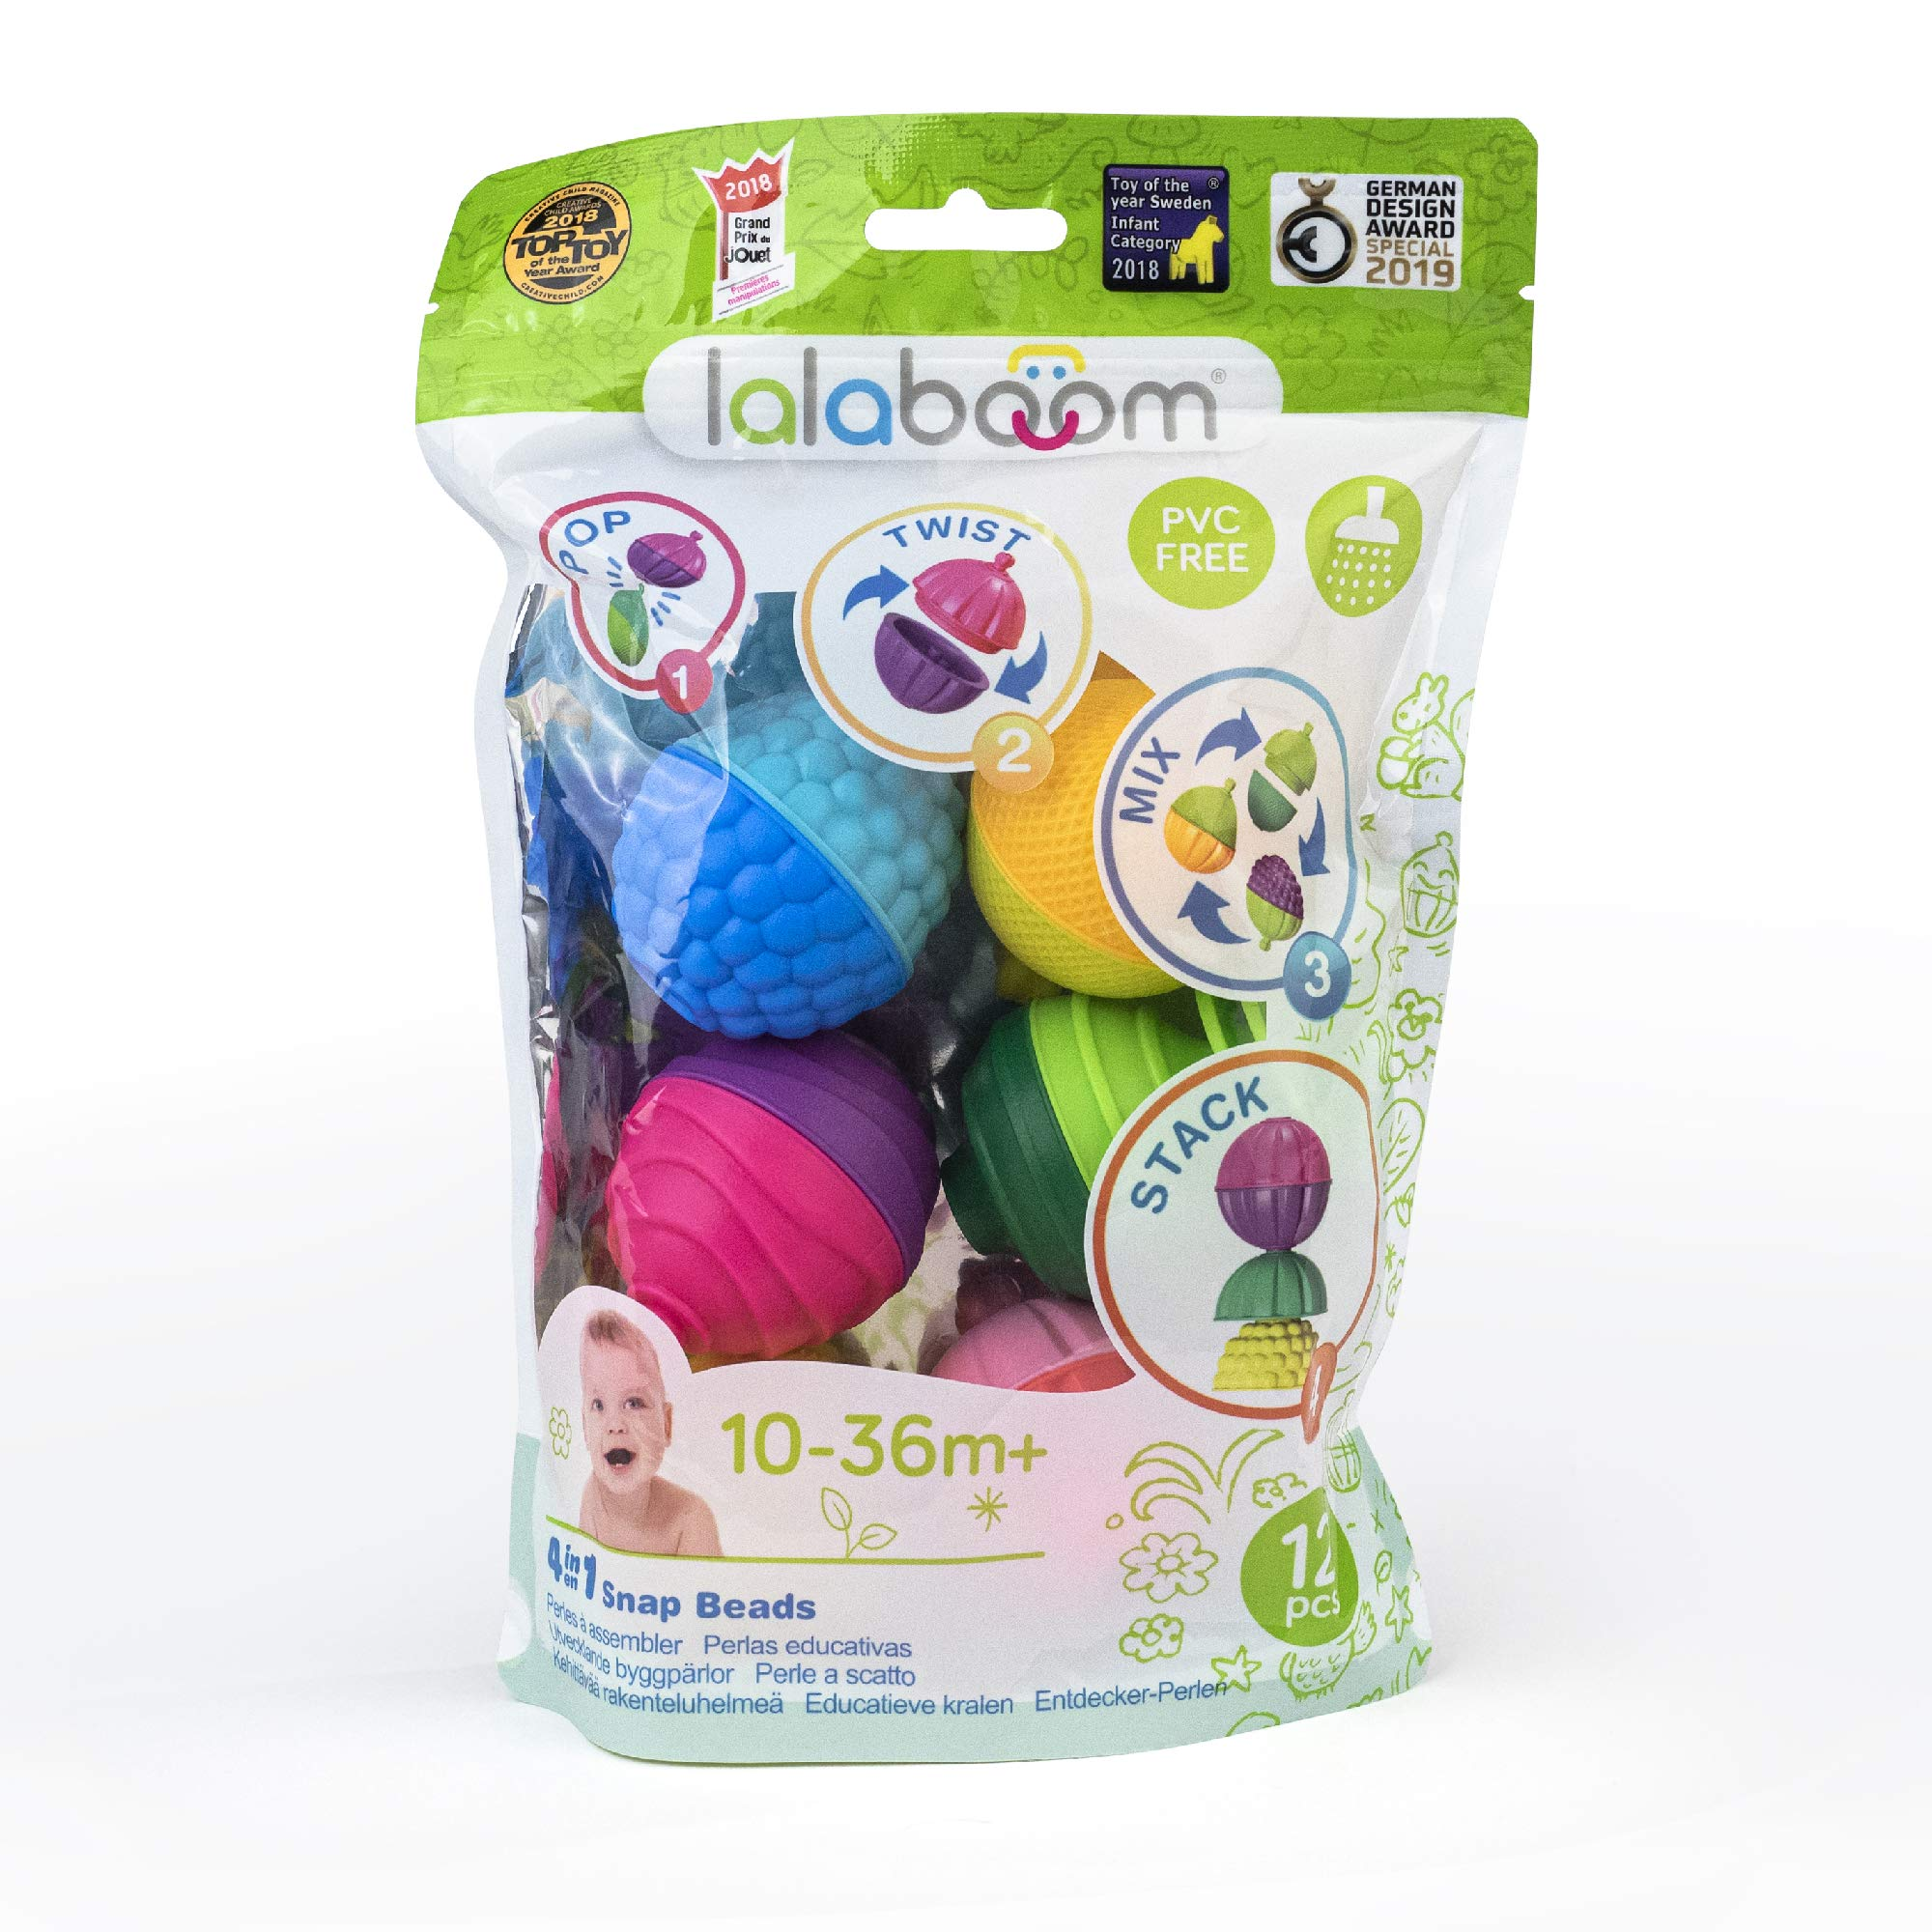 Lalaboom - Preschool Educational Beads - Montessori Shapes and Colors Construction Game and Learning Toy for Babies and Children from 10 Months to 4 Years Old - BL100, 12 Pieces